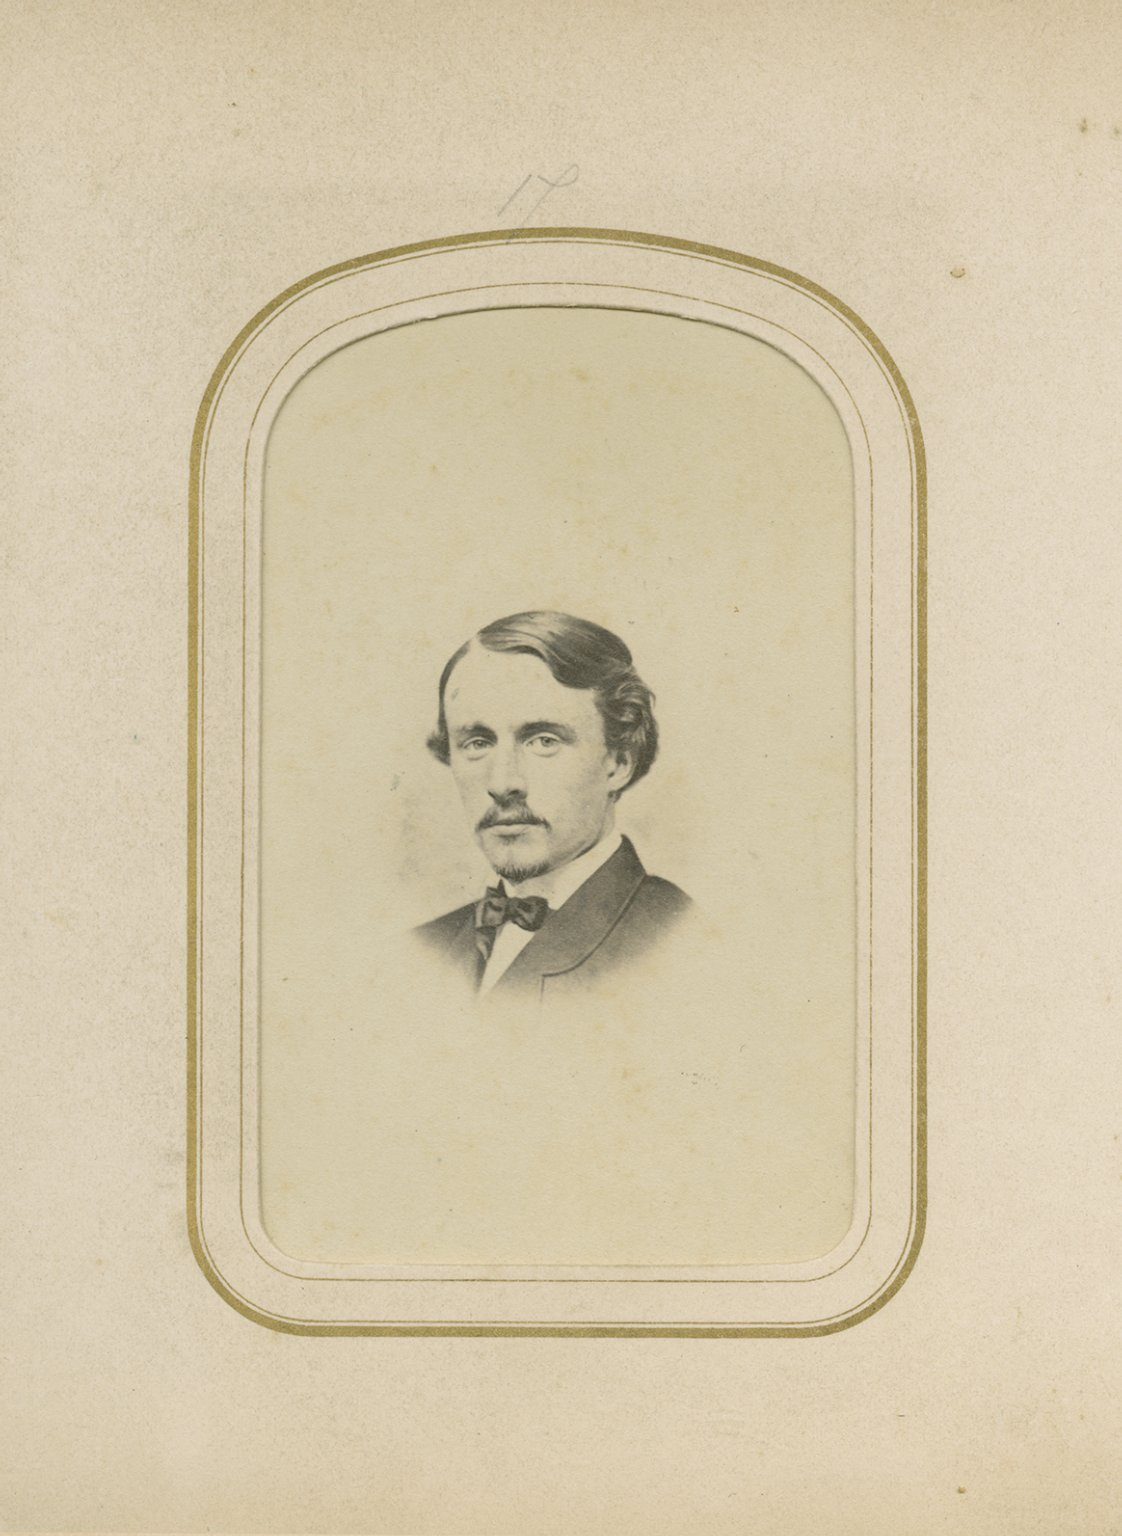 Colonel Robert Gould Shaw